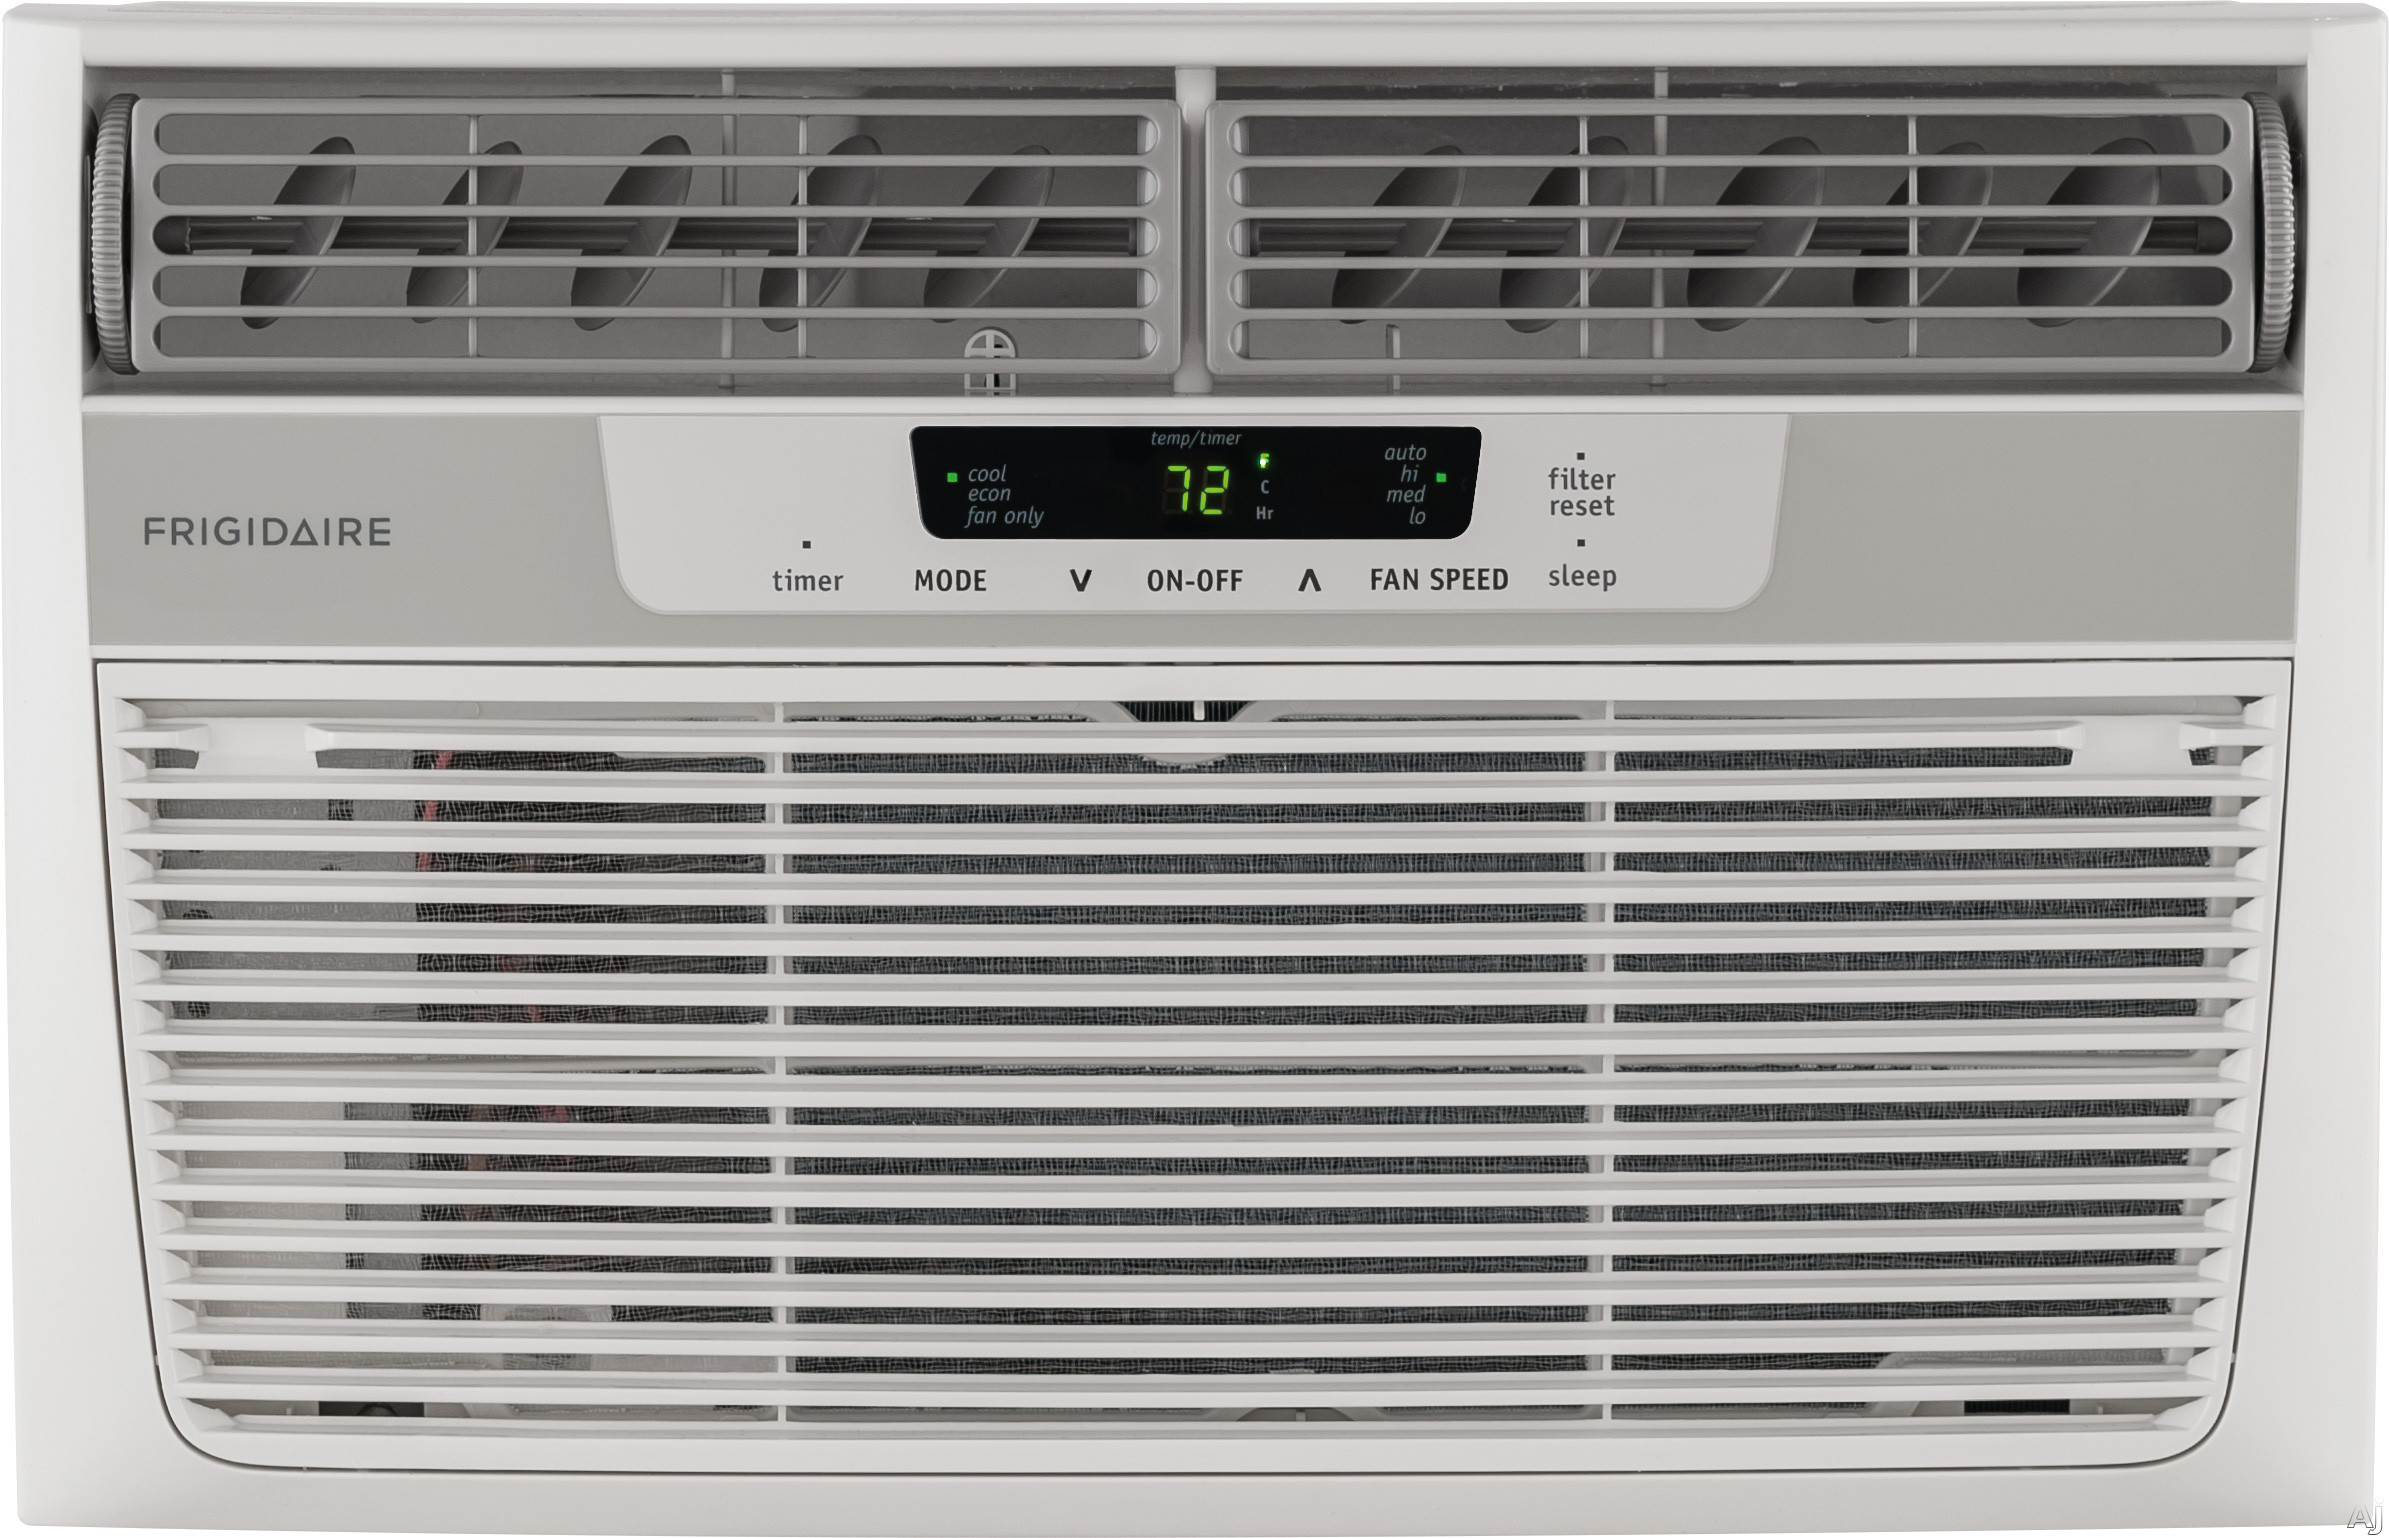 Frigidaire FFRA0822R1 8,000 BTU Window Air Conditioner with 10.9 EER, R-410A Refrigerant, 1.7 Pts/Hr Dehumidification, 350 sq. ft. Cooling Area, Auto Restart and Remote Control FFRA0822R1